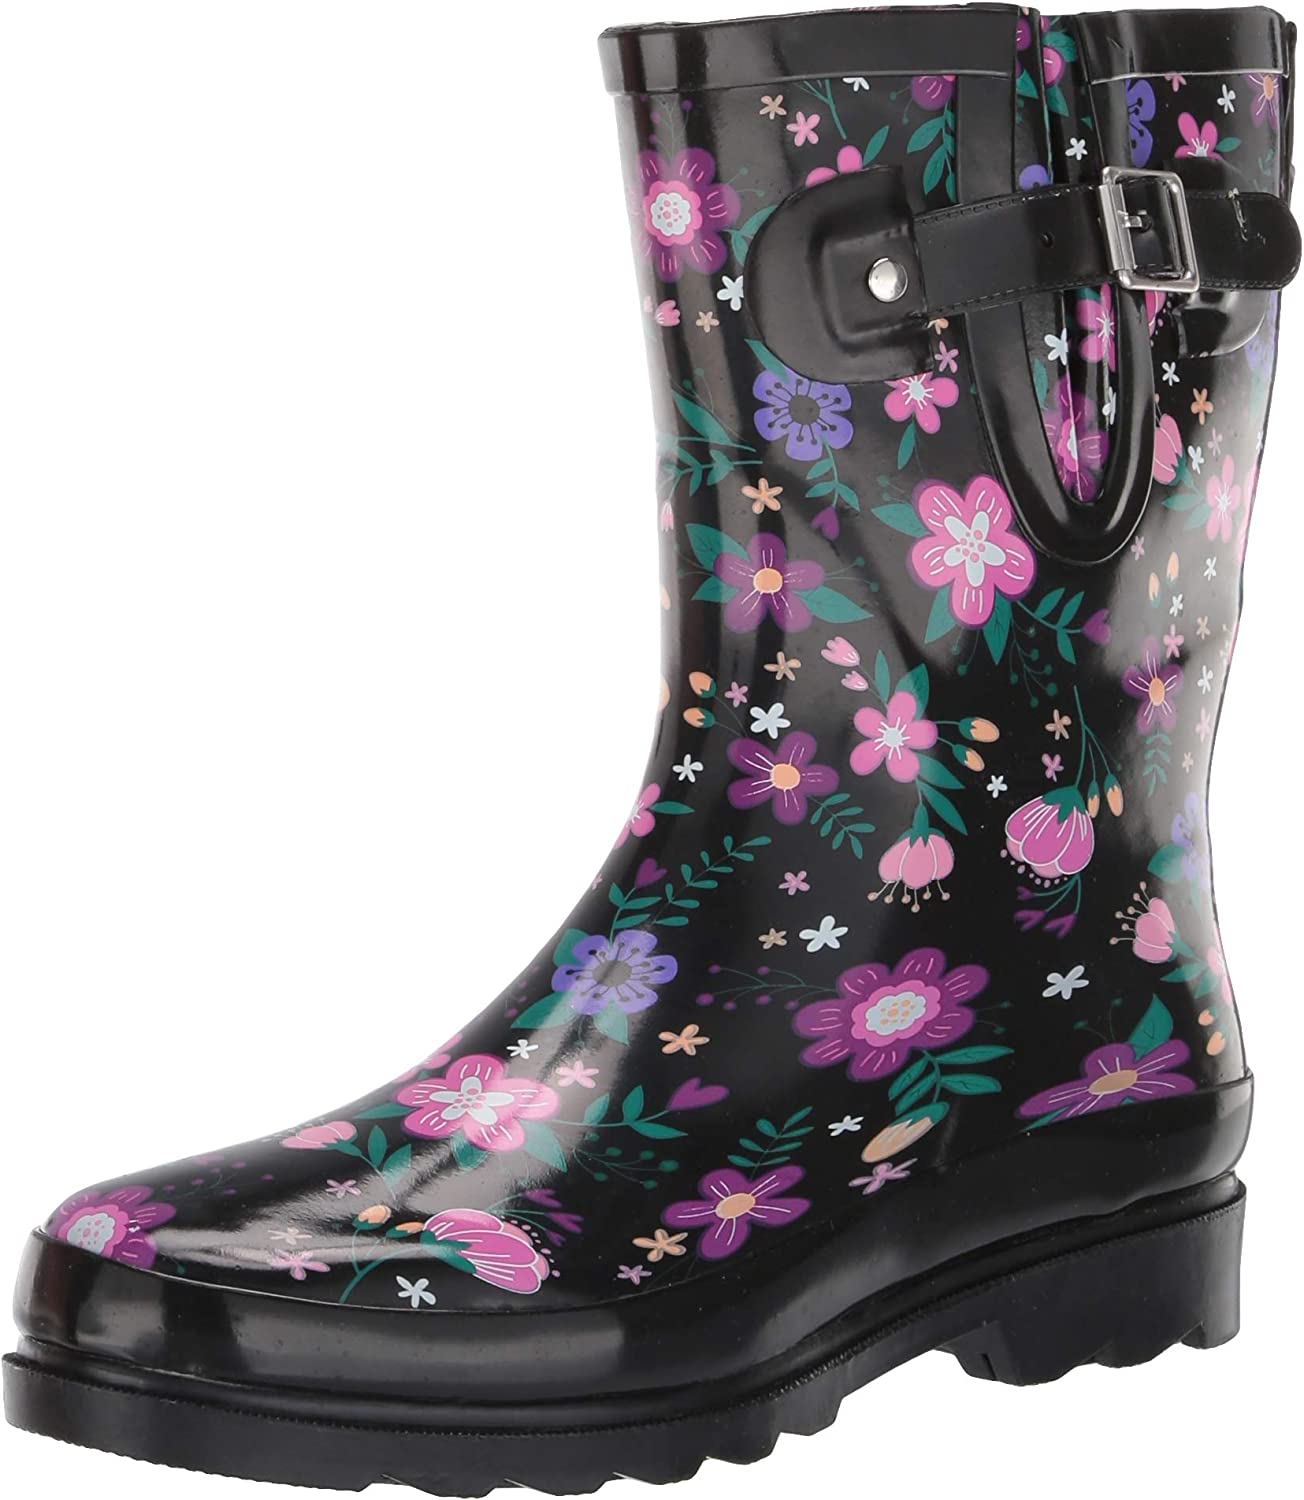 Western Chief Women's Mid-Height Waterproof Rain Boots